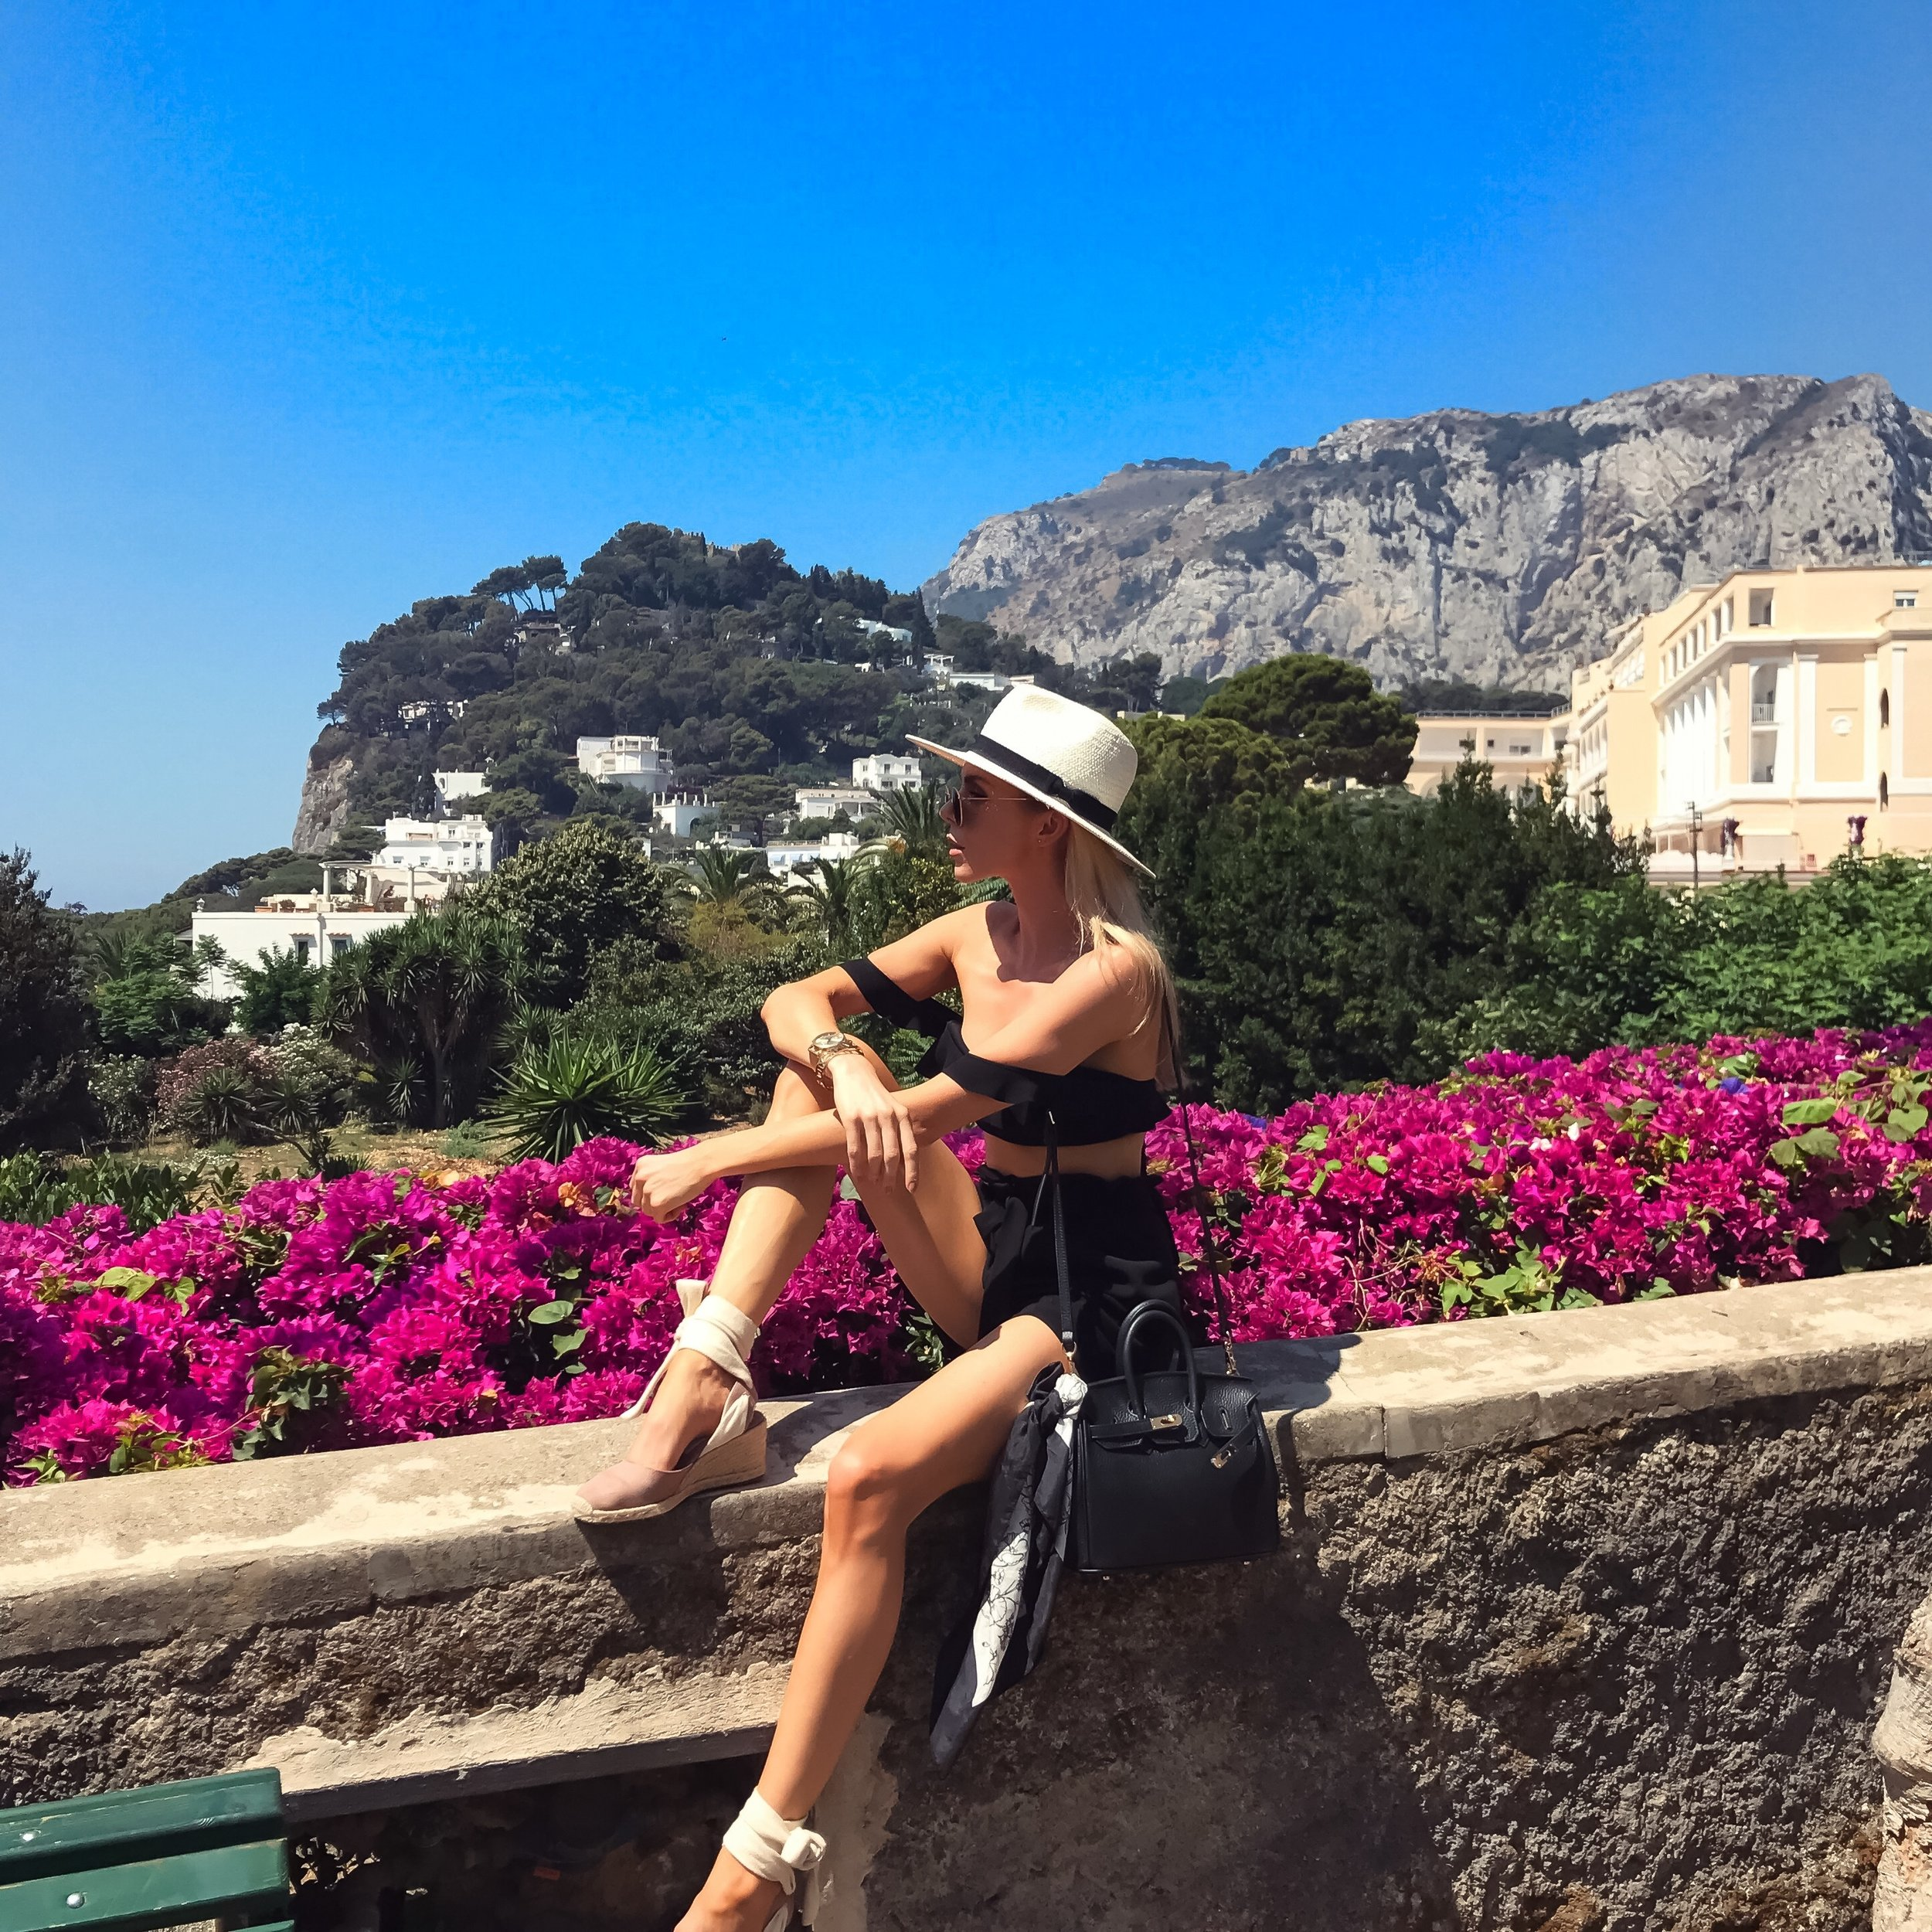 SORRENTO, GUIDE TO SORRENTO, WHAT TO DO IN SORRENTO, TRAVEL GUIDE, AMALFI COAST, TRAVEL BLOGGER, ITALIAN FASHION, WHAT TO WEAR IN SORRENTO